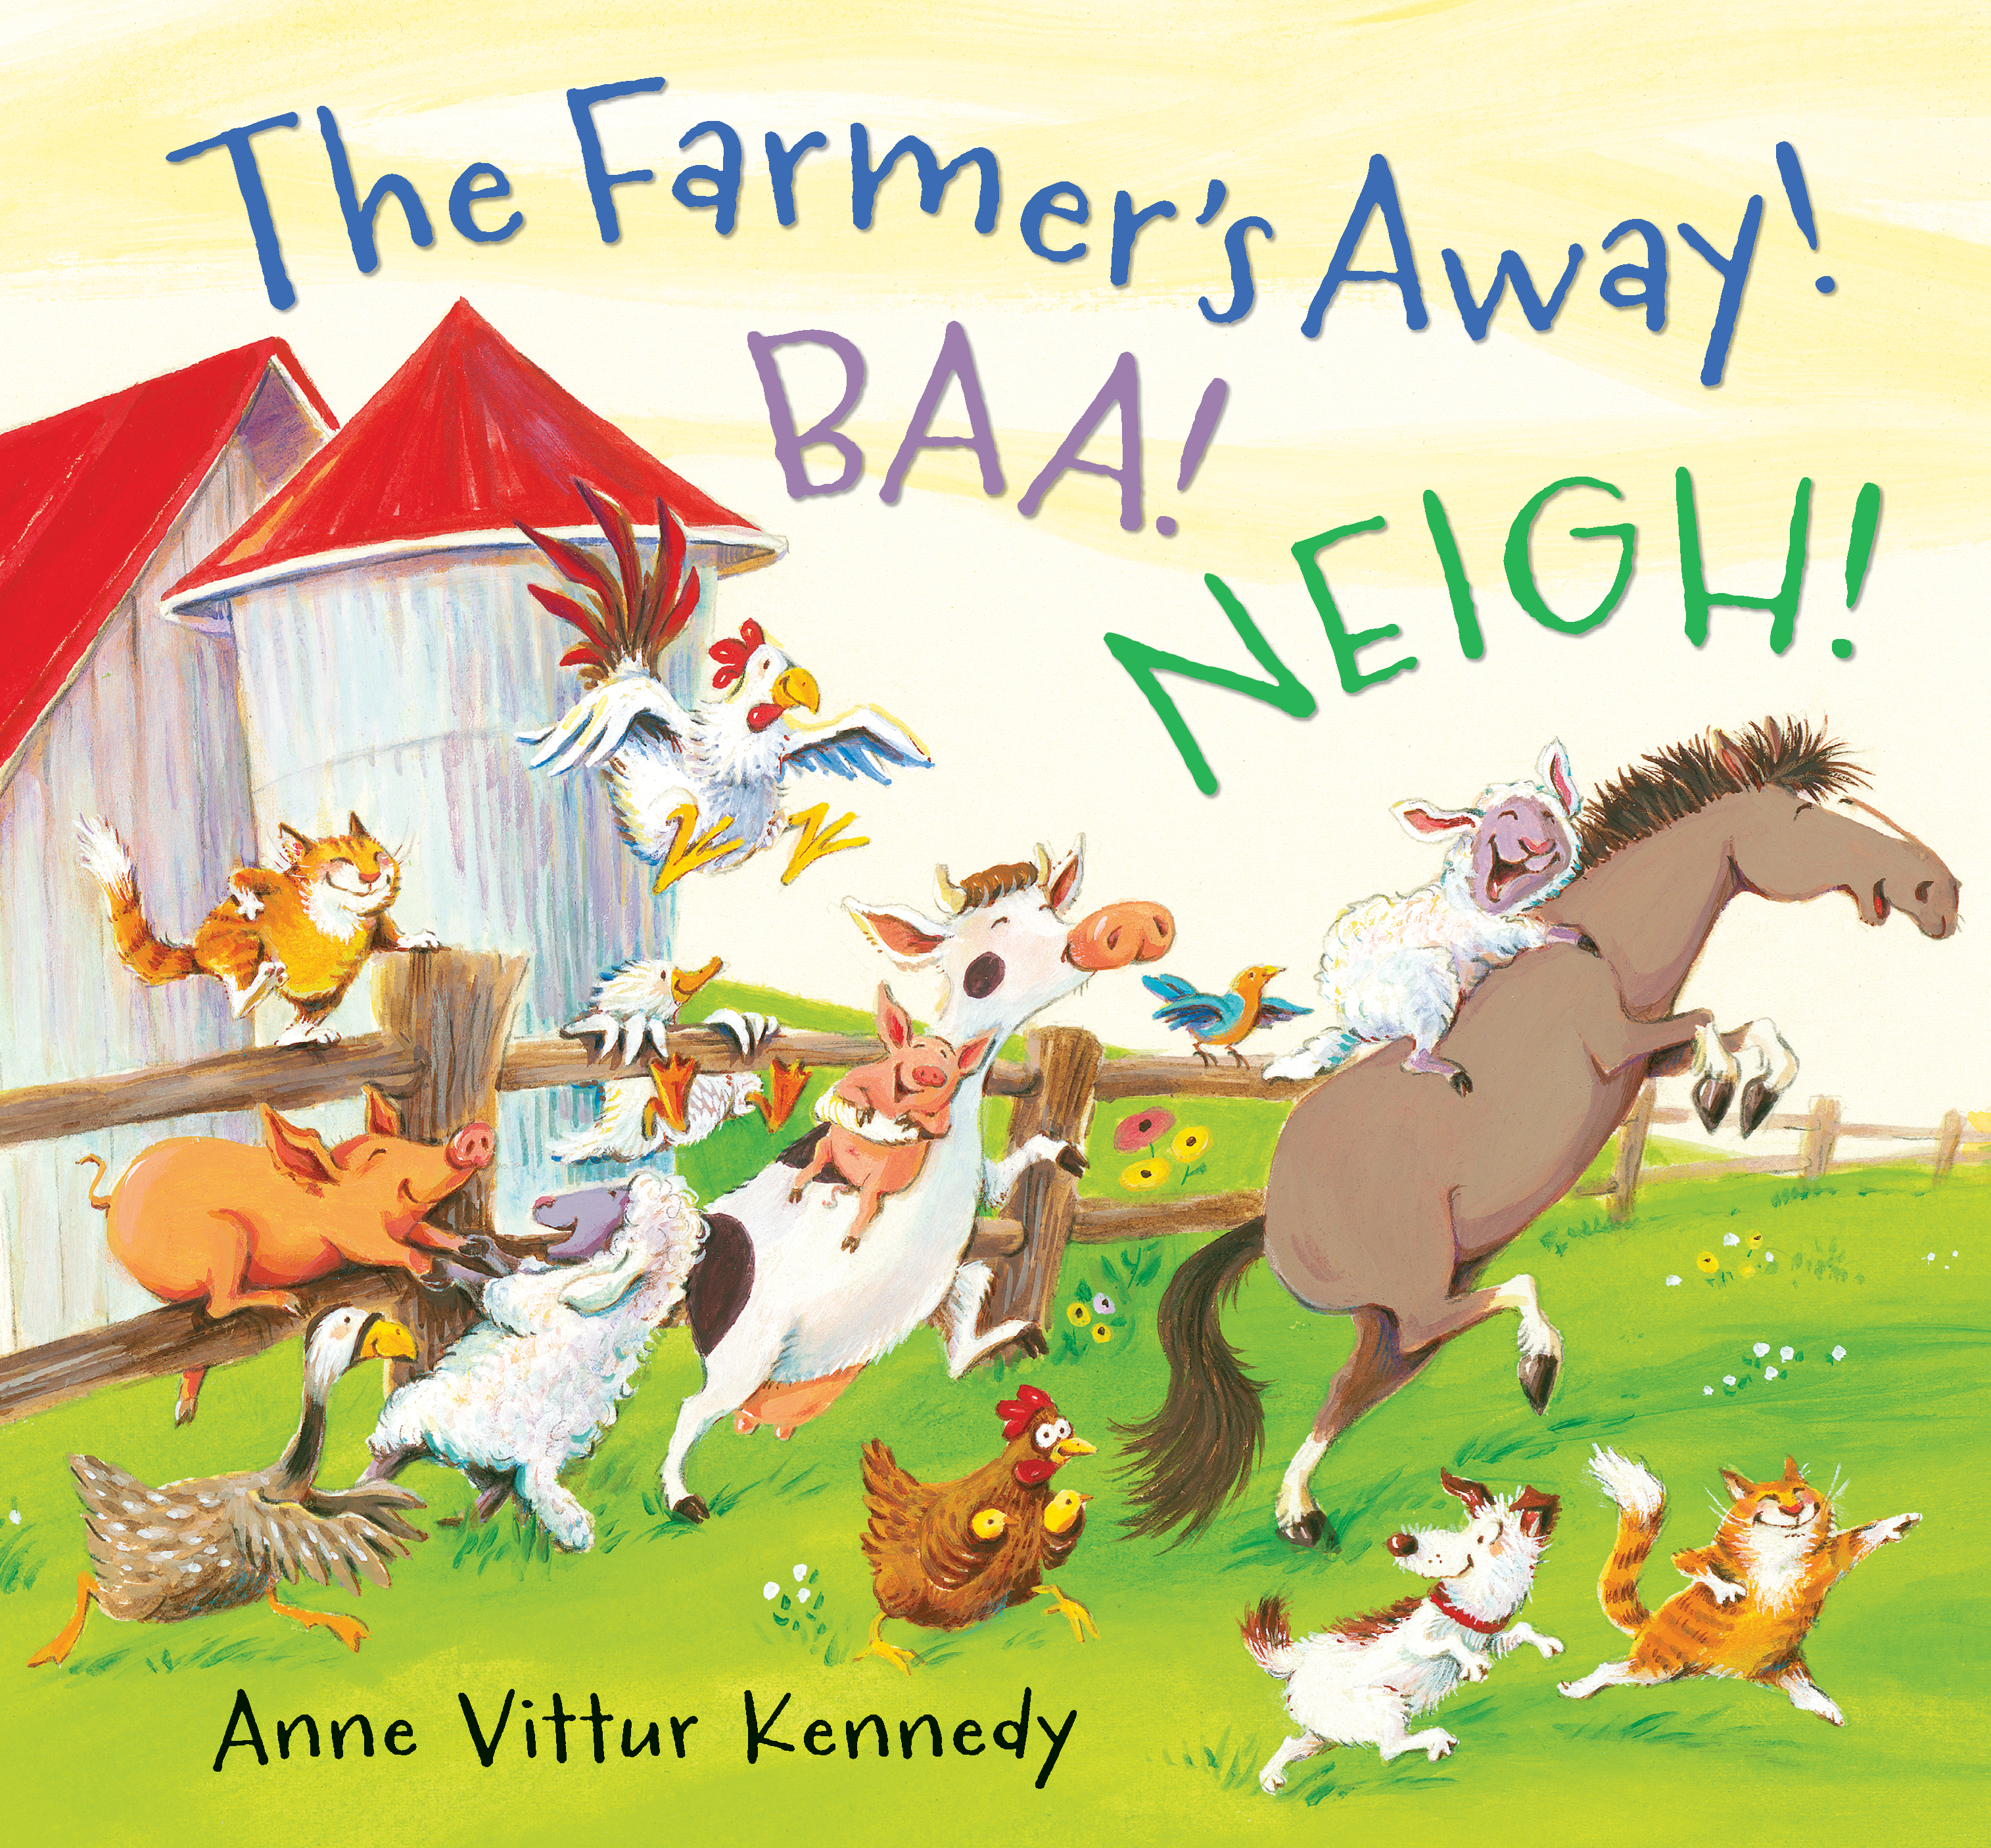 The Farmer's Away! Baa! Neigh! by Anne Vittur Kennedy